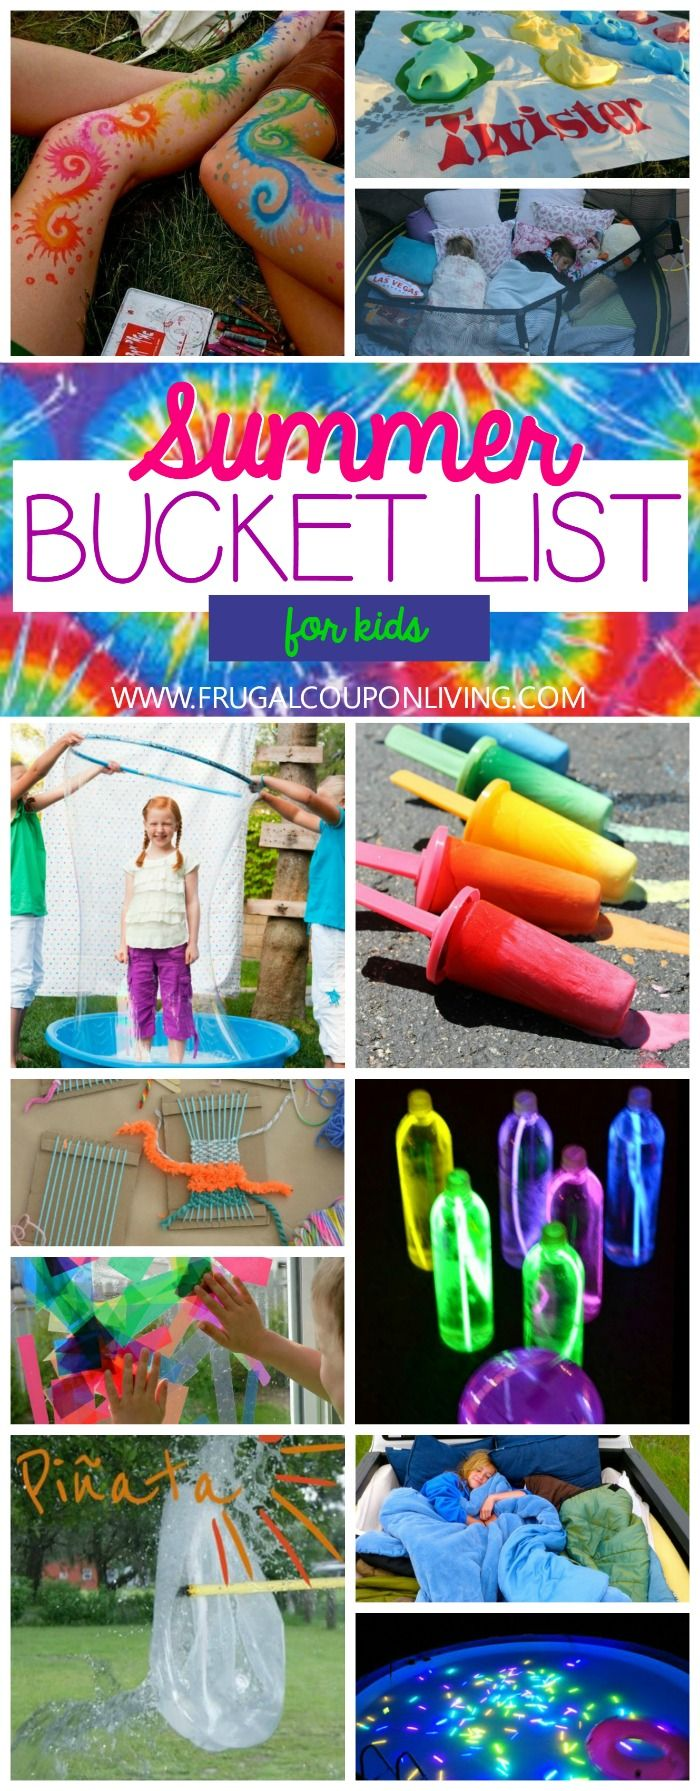 Visual Summer Bucket List for Kids | Frugal Coupon Living | Bloglovin'